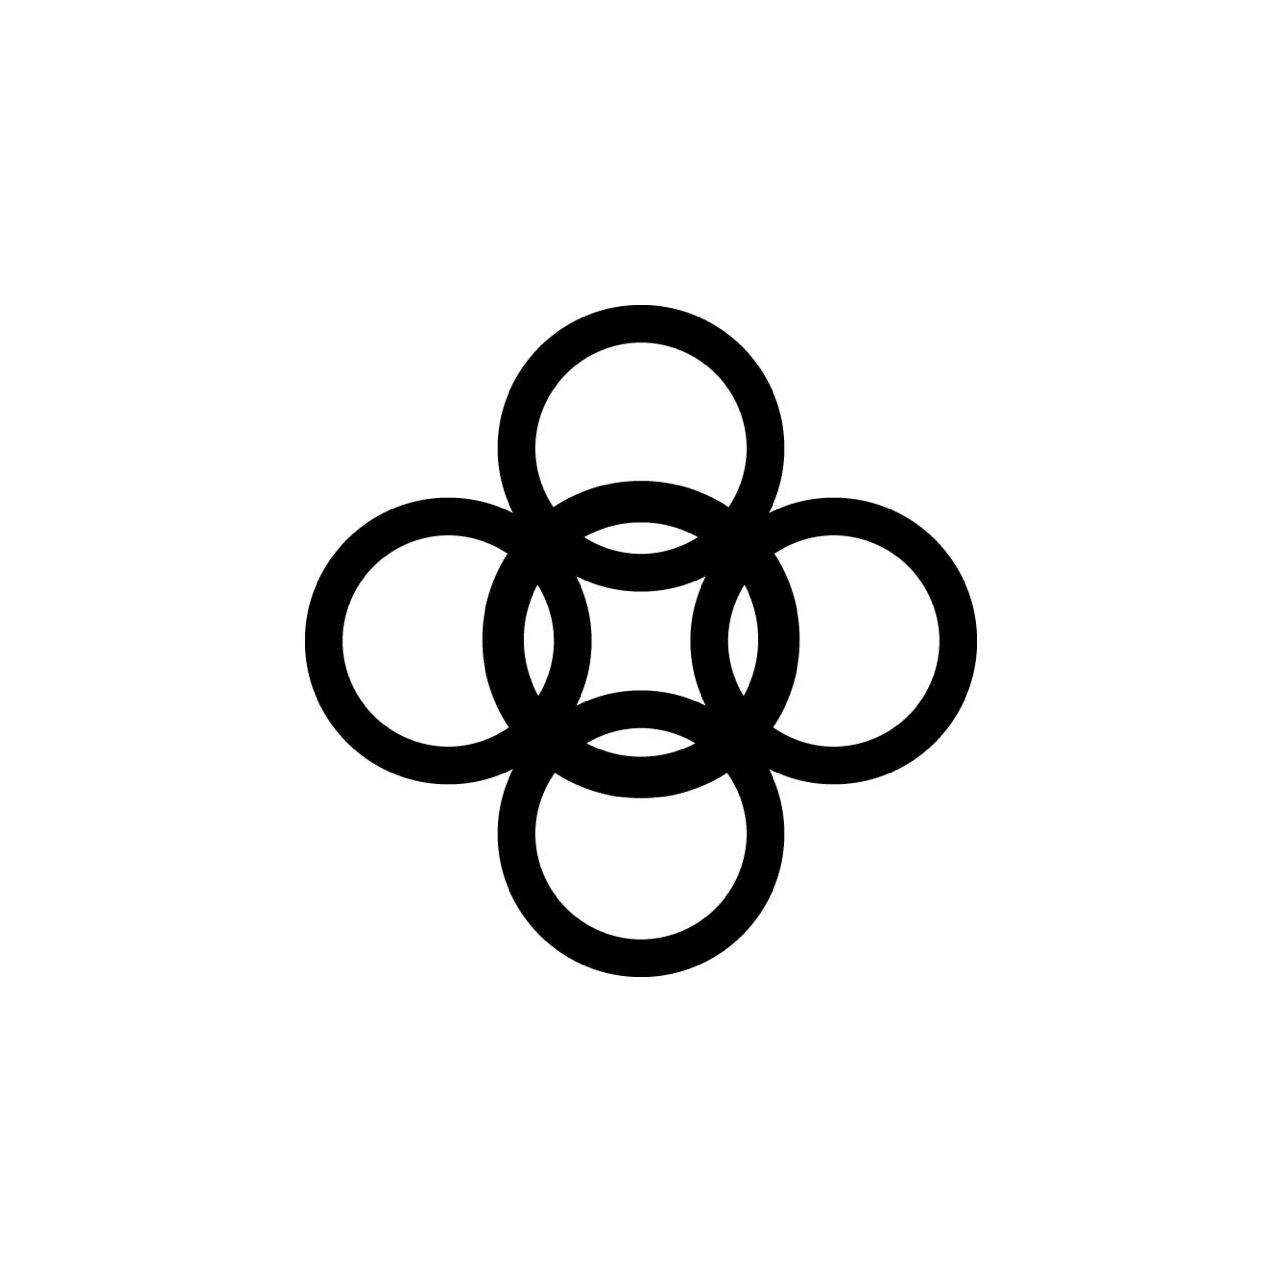 alesso-has-an-abstract-logo-design-with-five-circles-forming-a-floral-silhouette